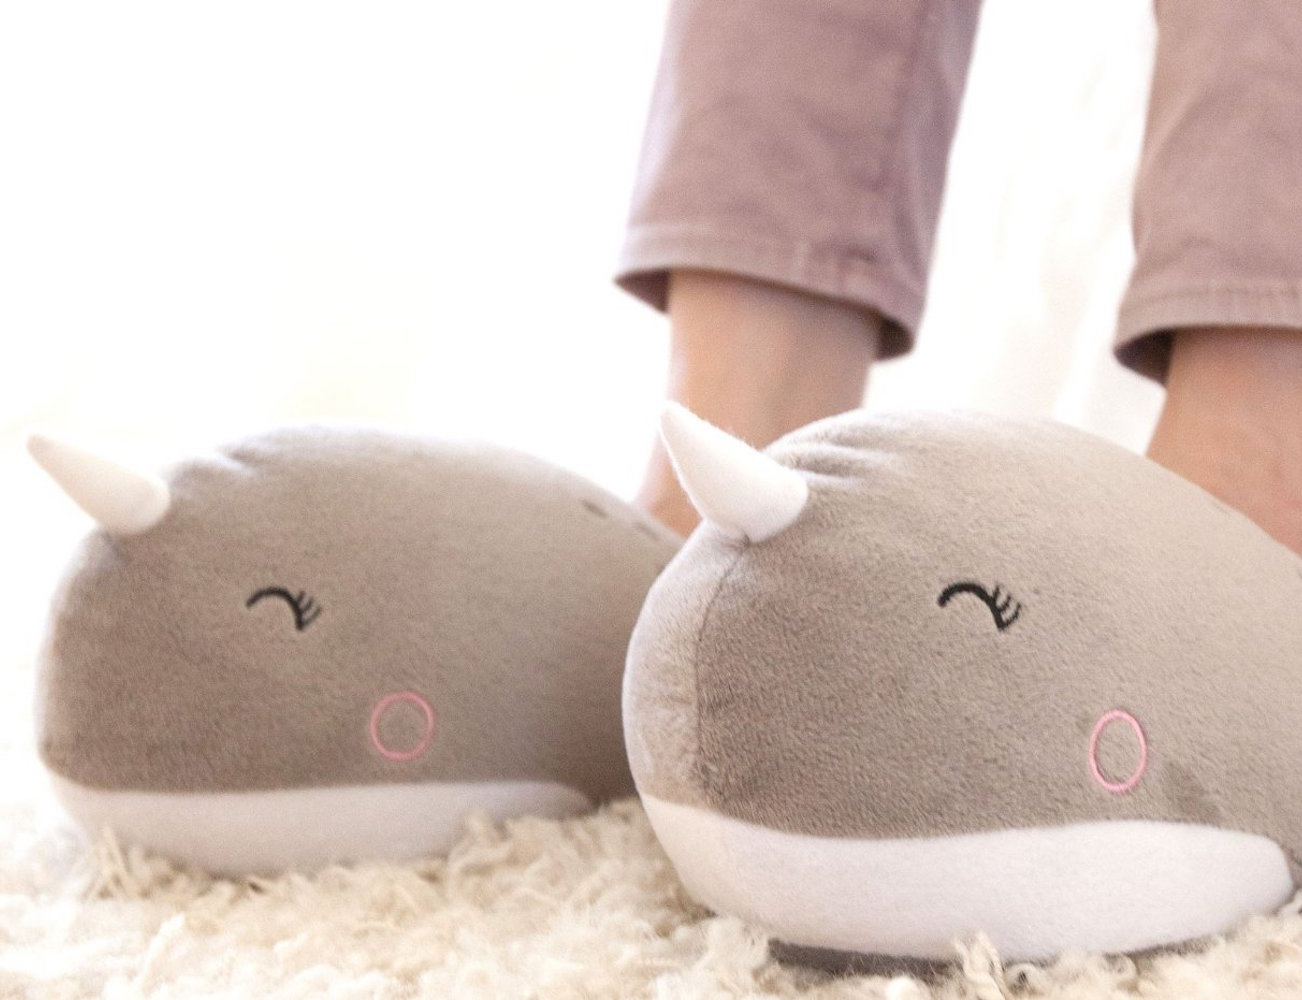 nari-narwhal-usb-heated-slippers-03